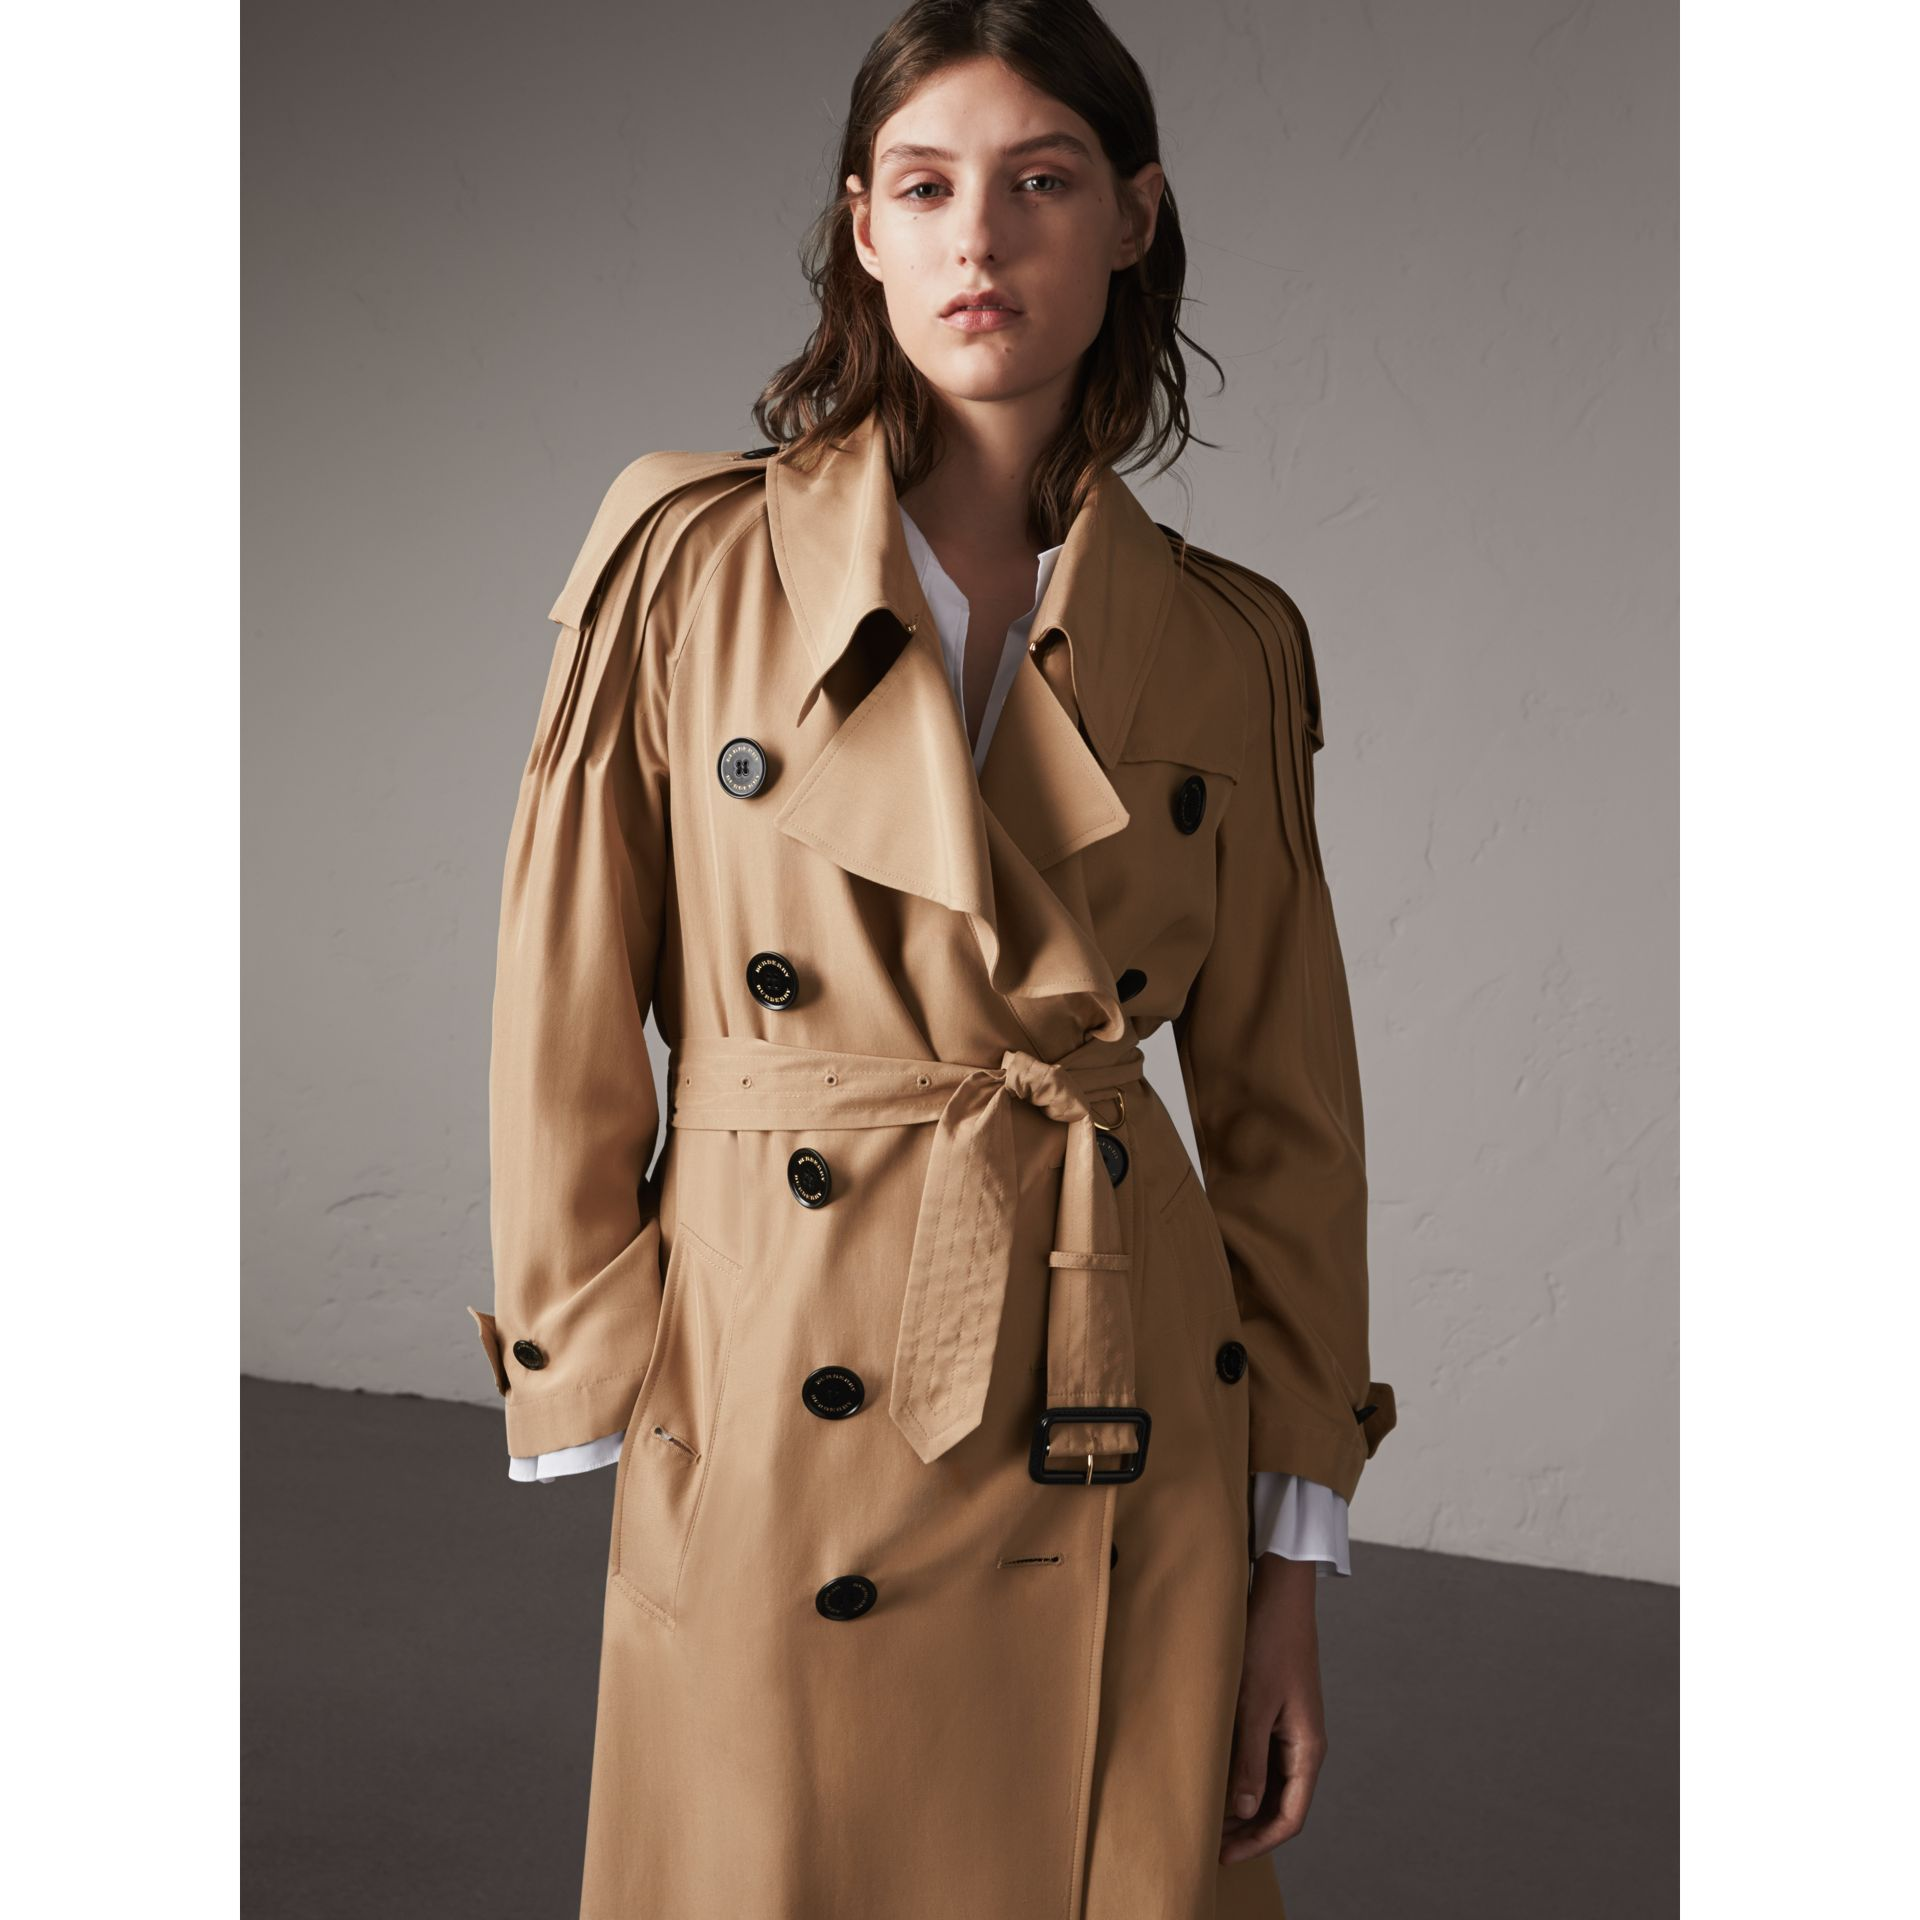 Ruffle Detail Silk Trench Coat in Honey - Women | Burberry United Kingdom - gallery image 6